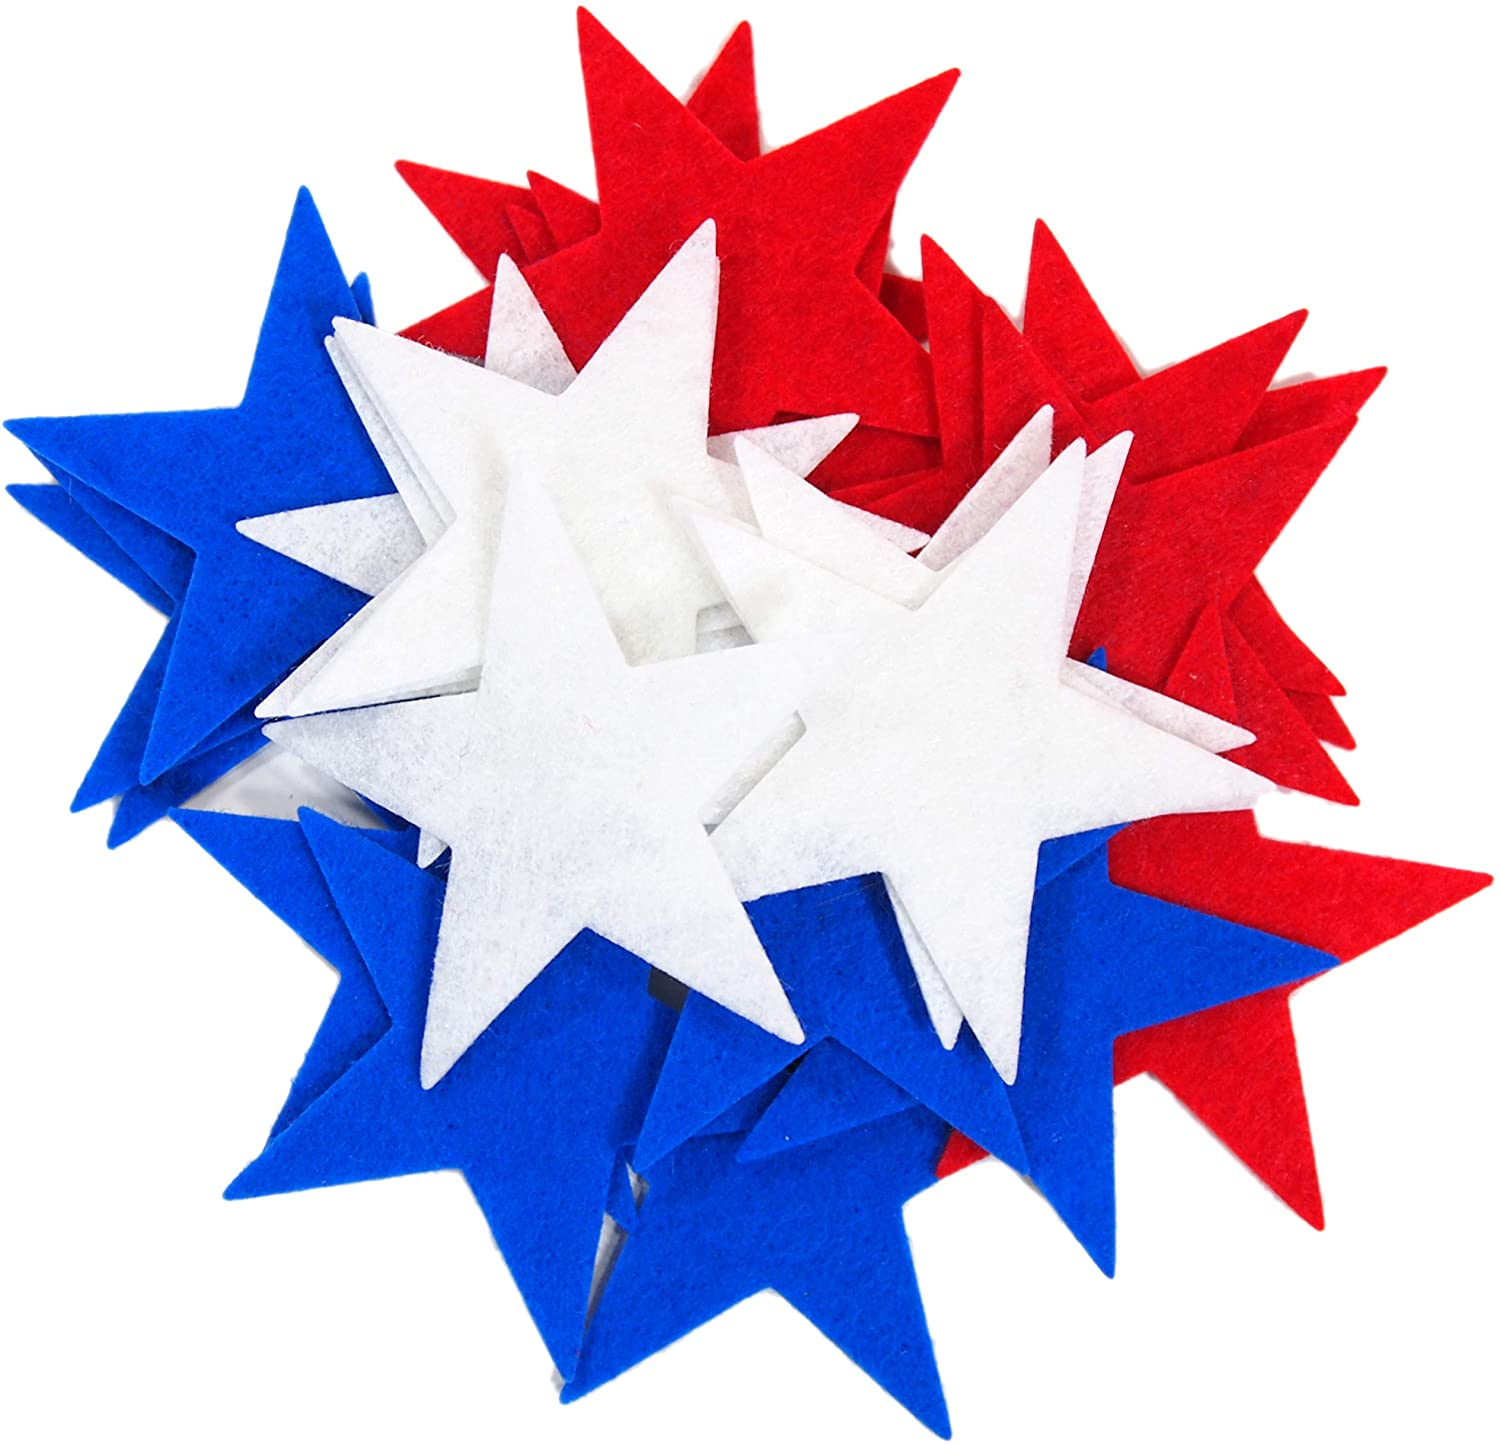 Playfully Ever After 1.5 inch Stiff Felt Stars 88pc (Red, White, Blue)